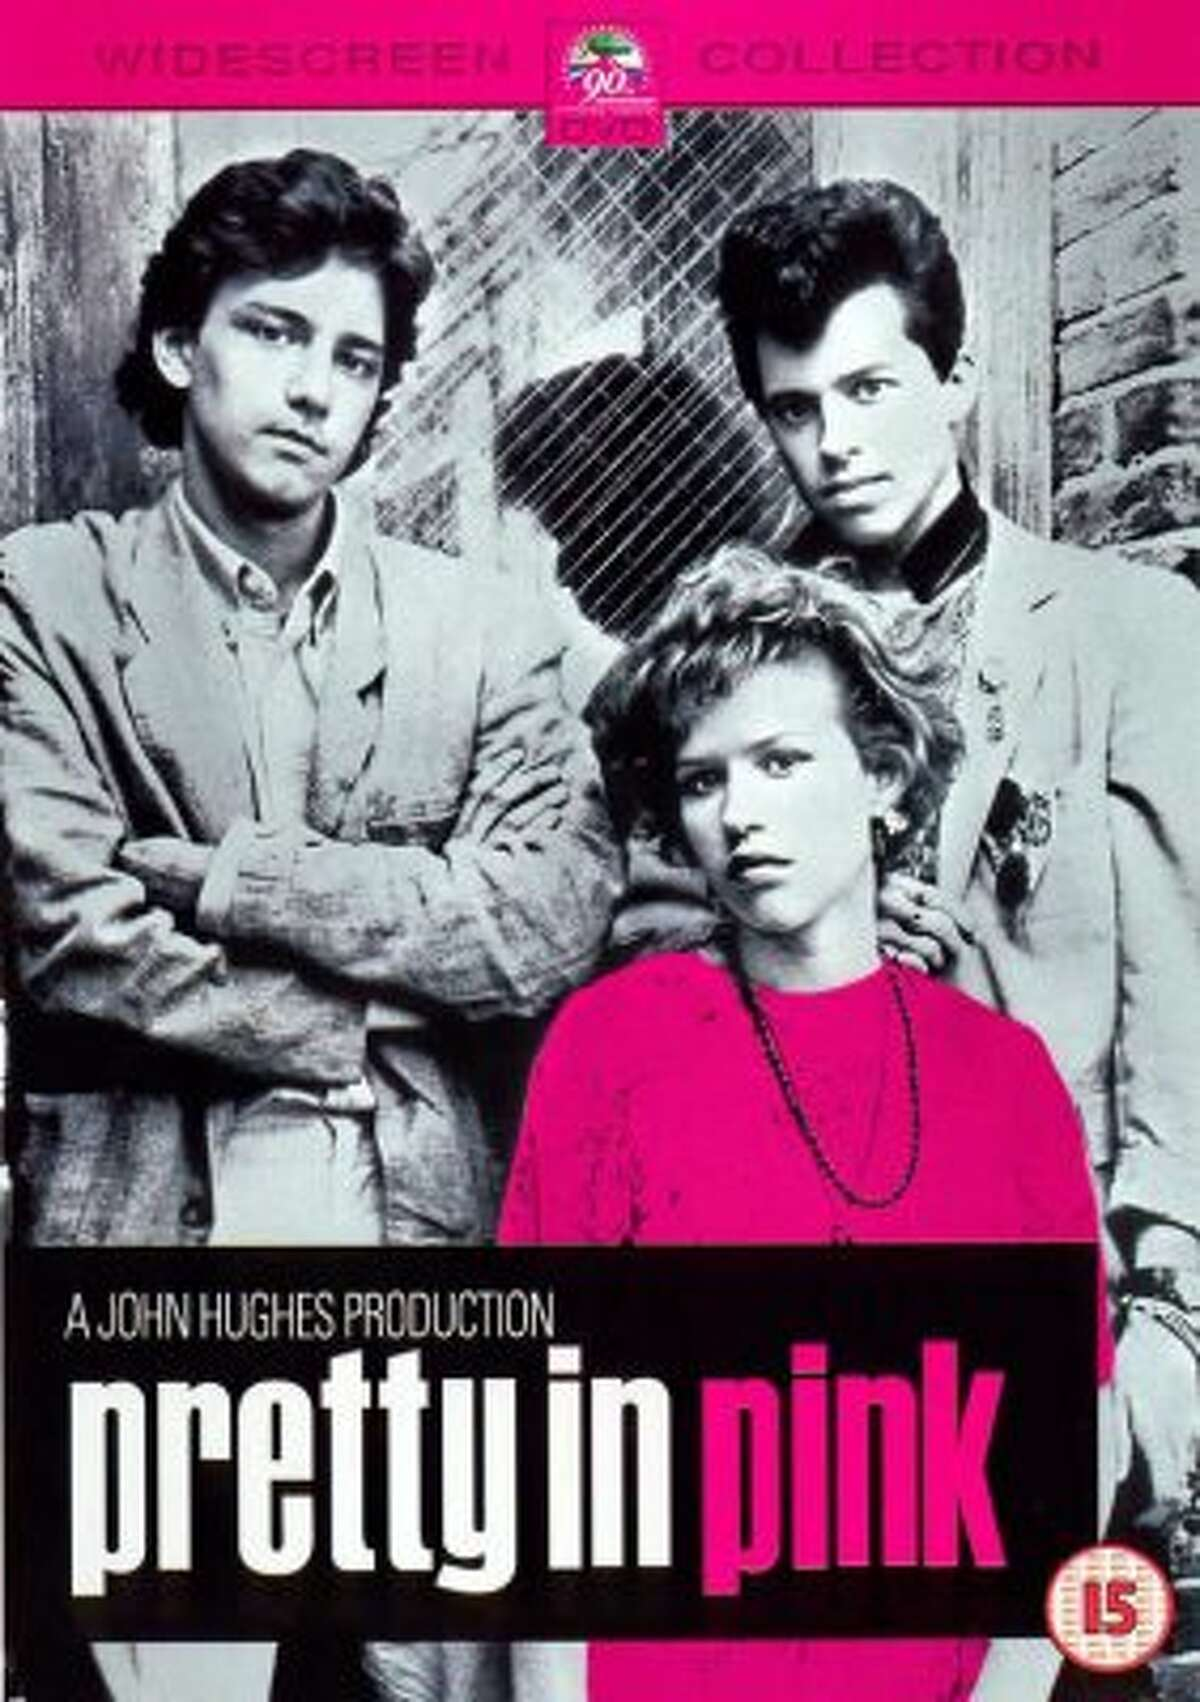 The movie is dedicated to Alexa Kenin and Bruce Weintraub.Kenin, who played Jena, was murdered in New York just before the movie was released.Set and production designer Weintraub died of AIDS at 33 and